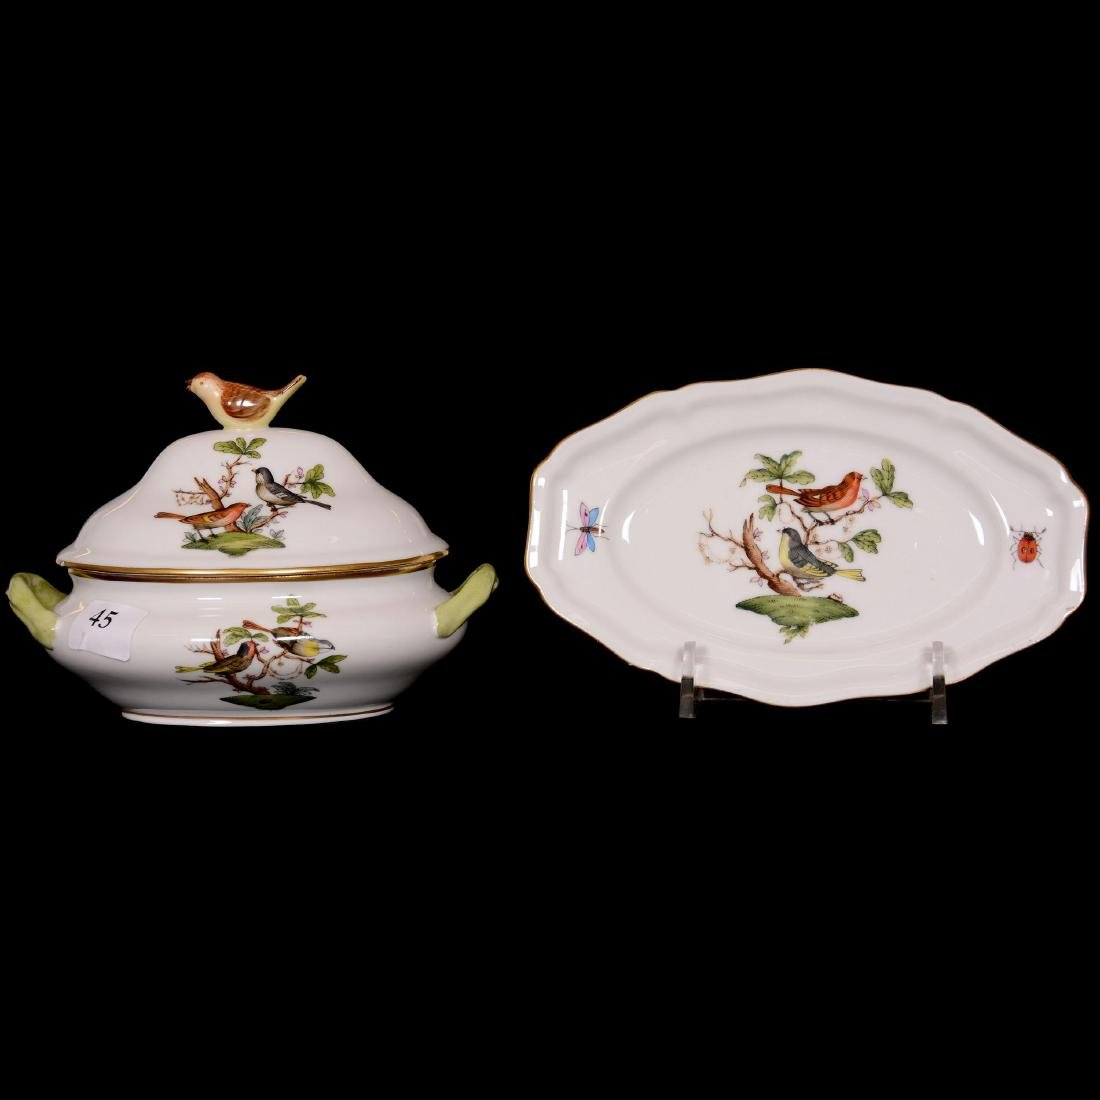 Herend Hungary Porcelain Hand Painted Miniature Covered